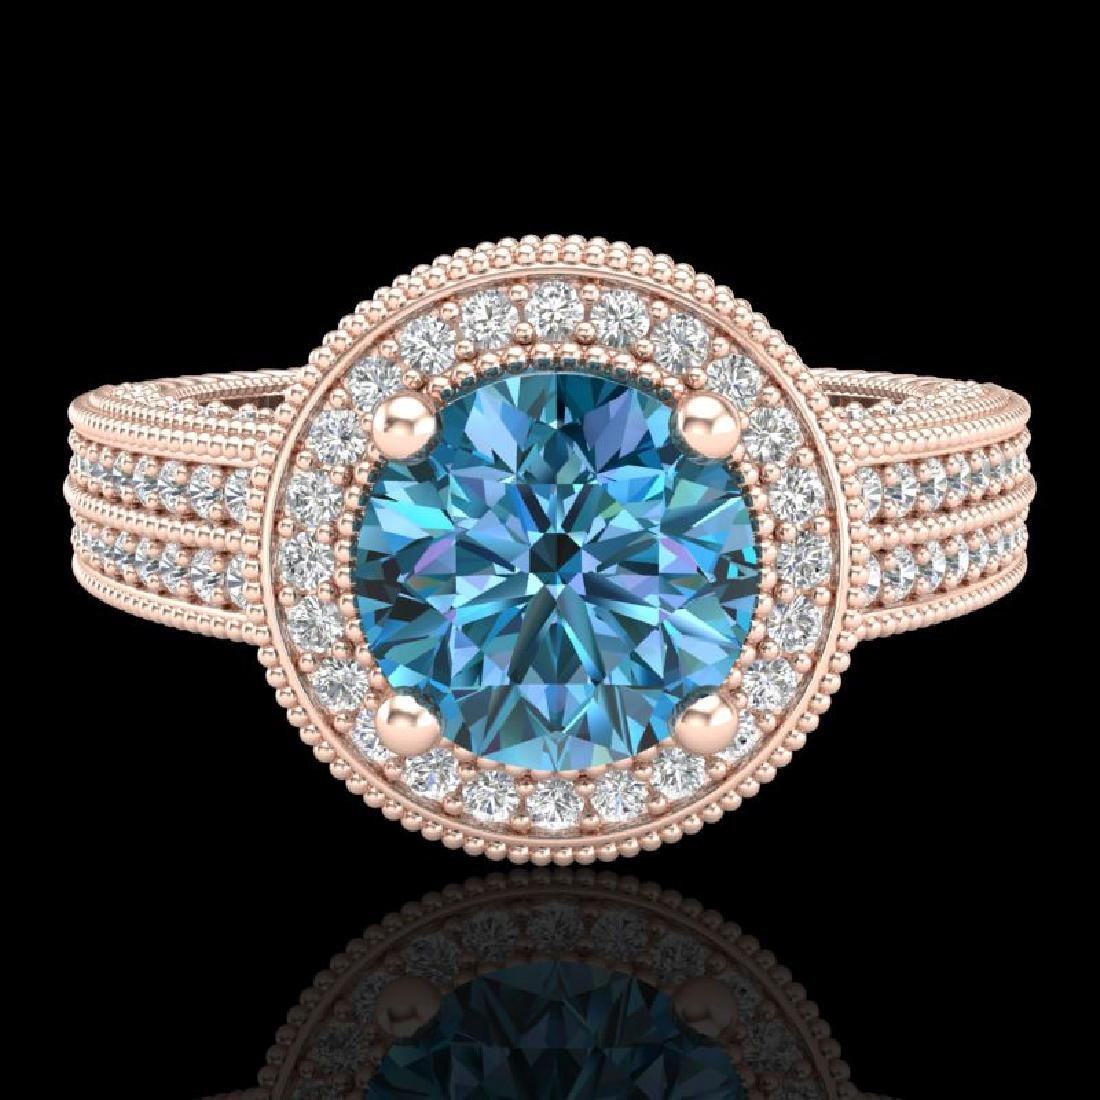 2.8 CTW Intense Blue Diamond Solitaire Engagement Art - 2